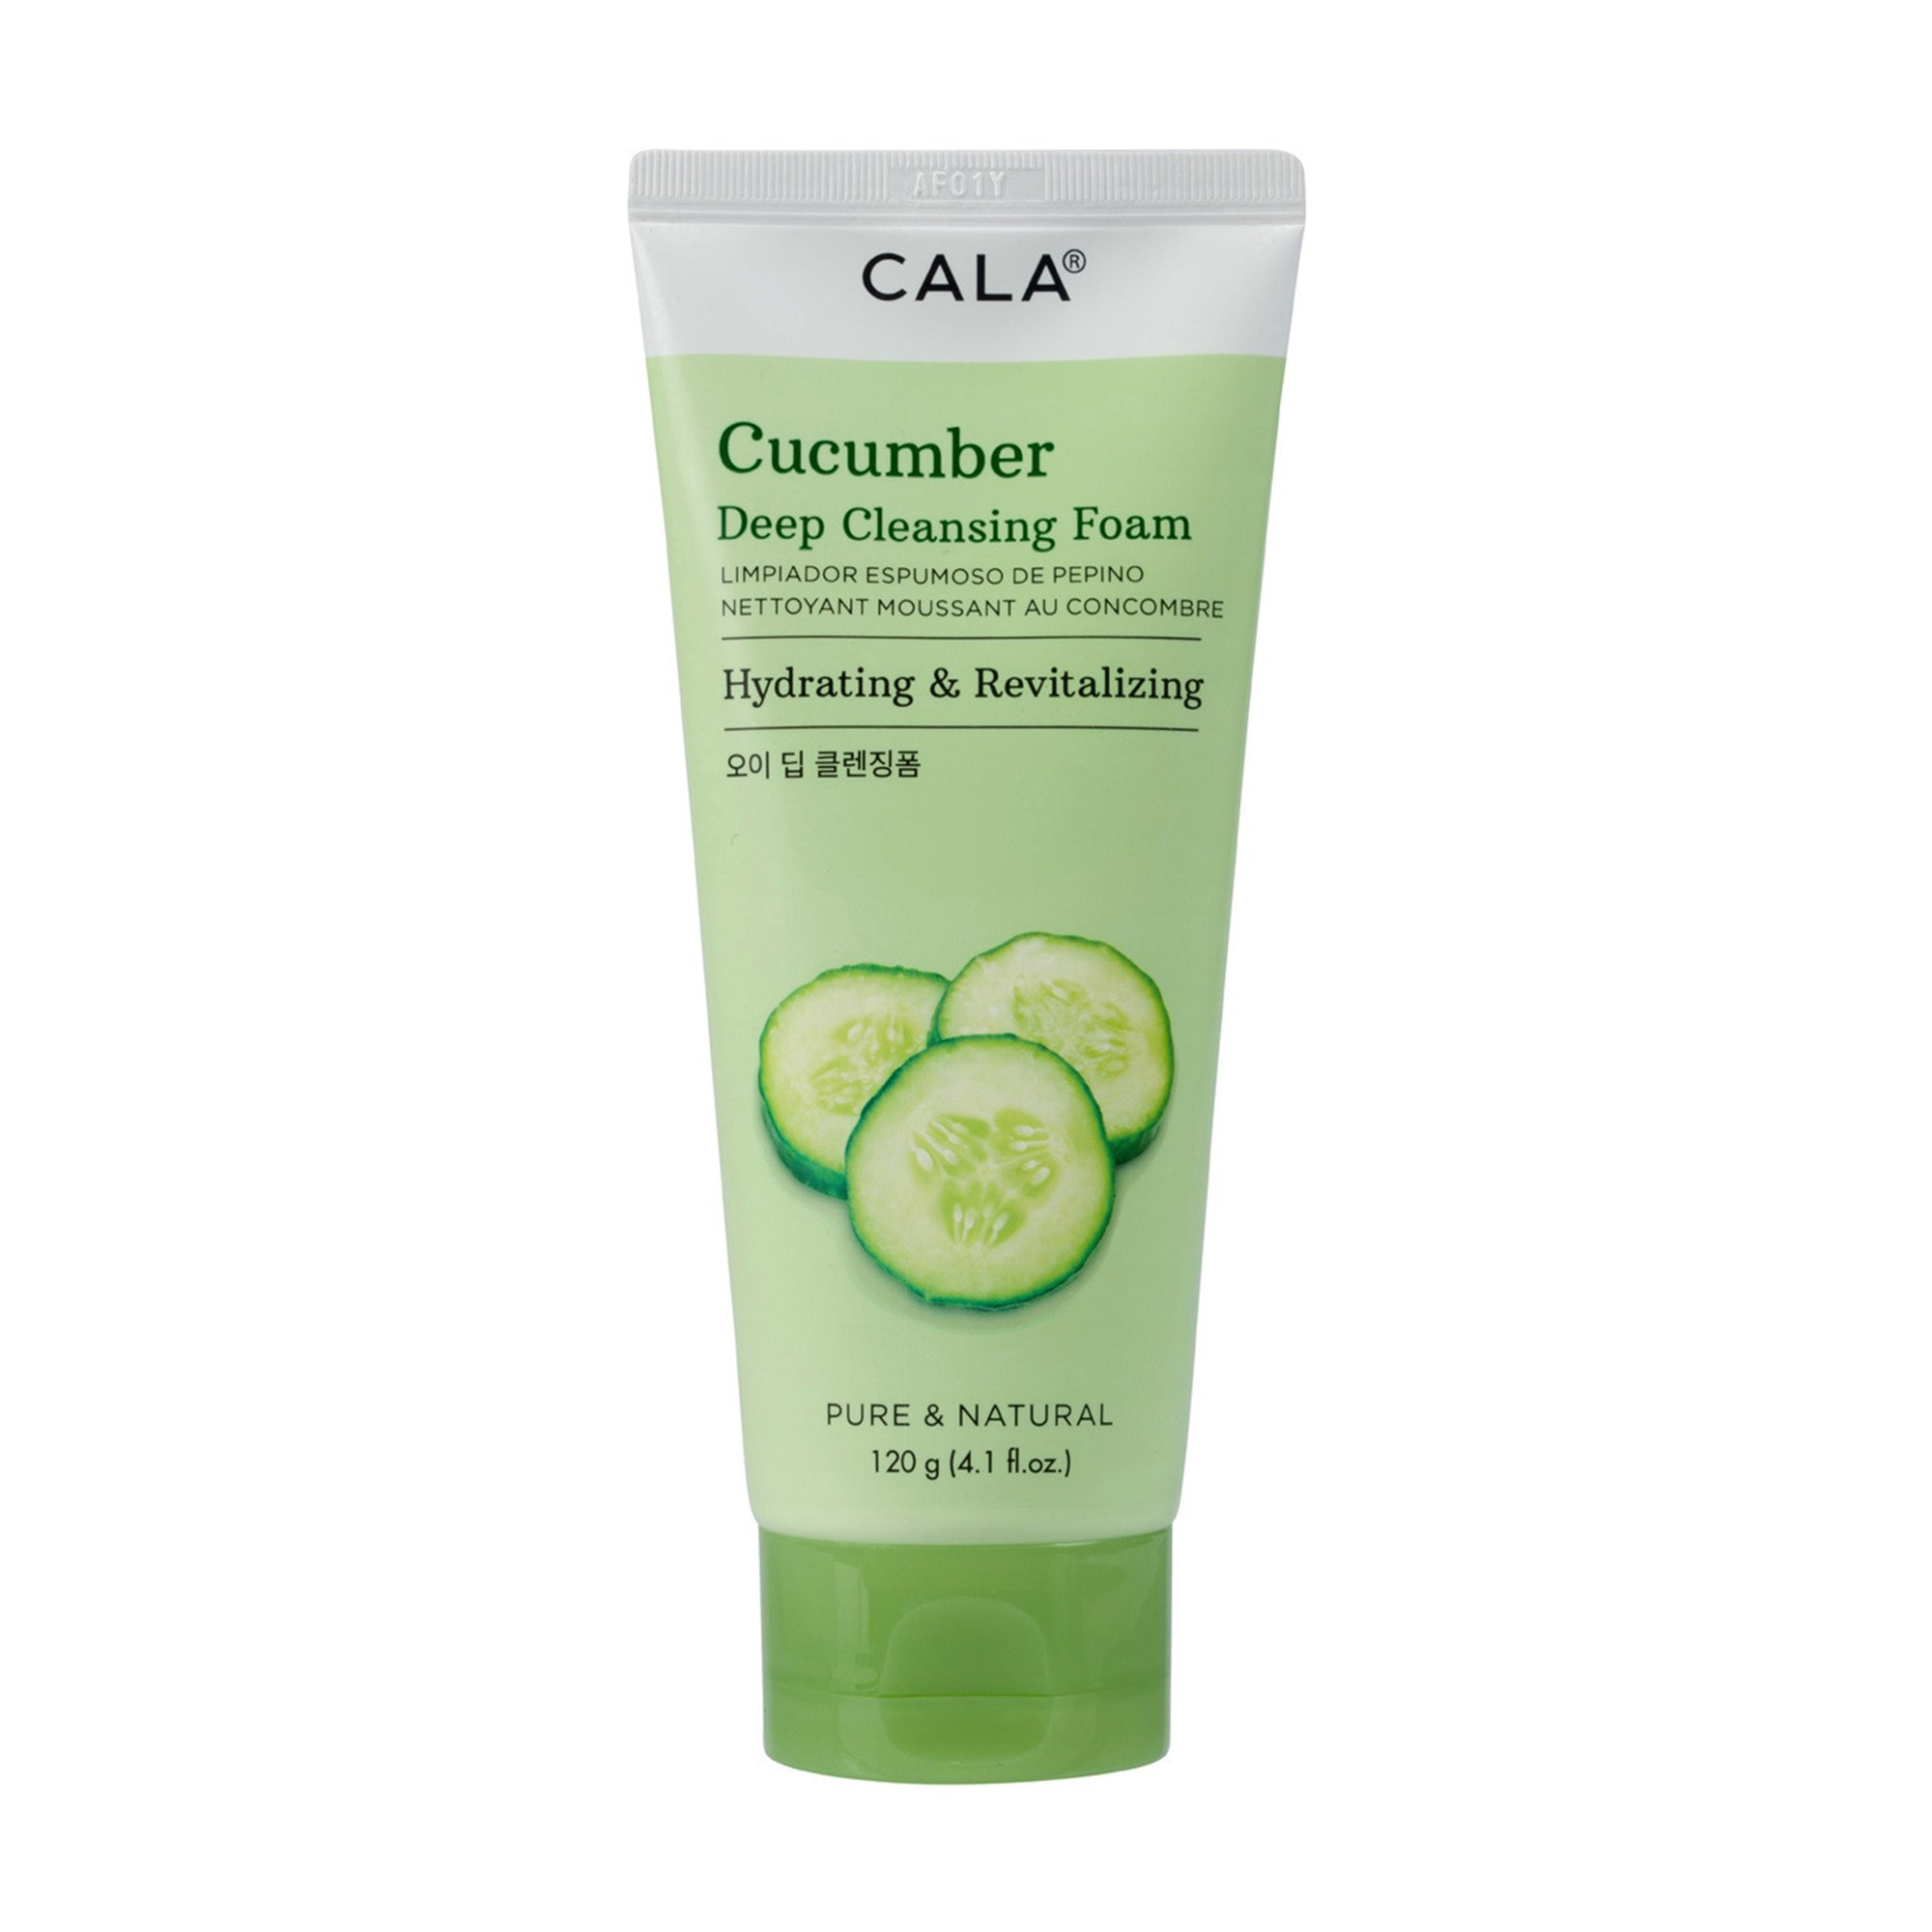 Cala Deep Cleansing Foam Cucumber 120G